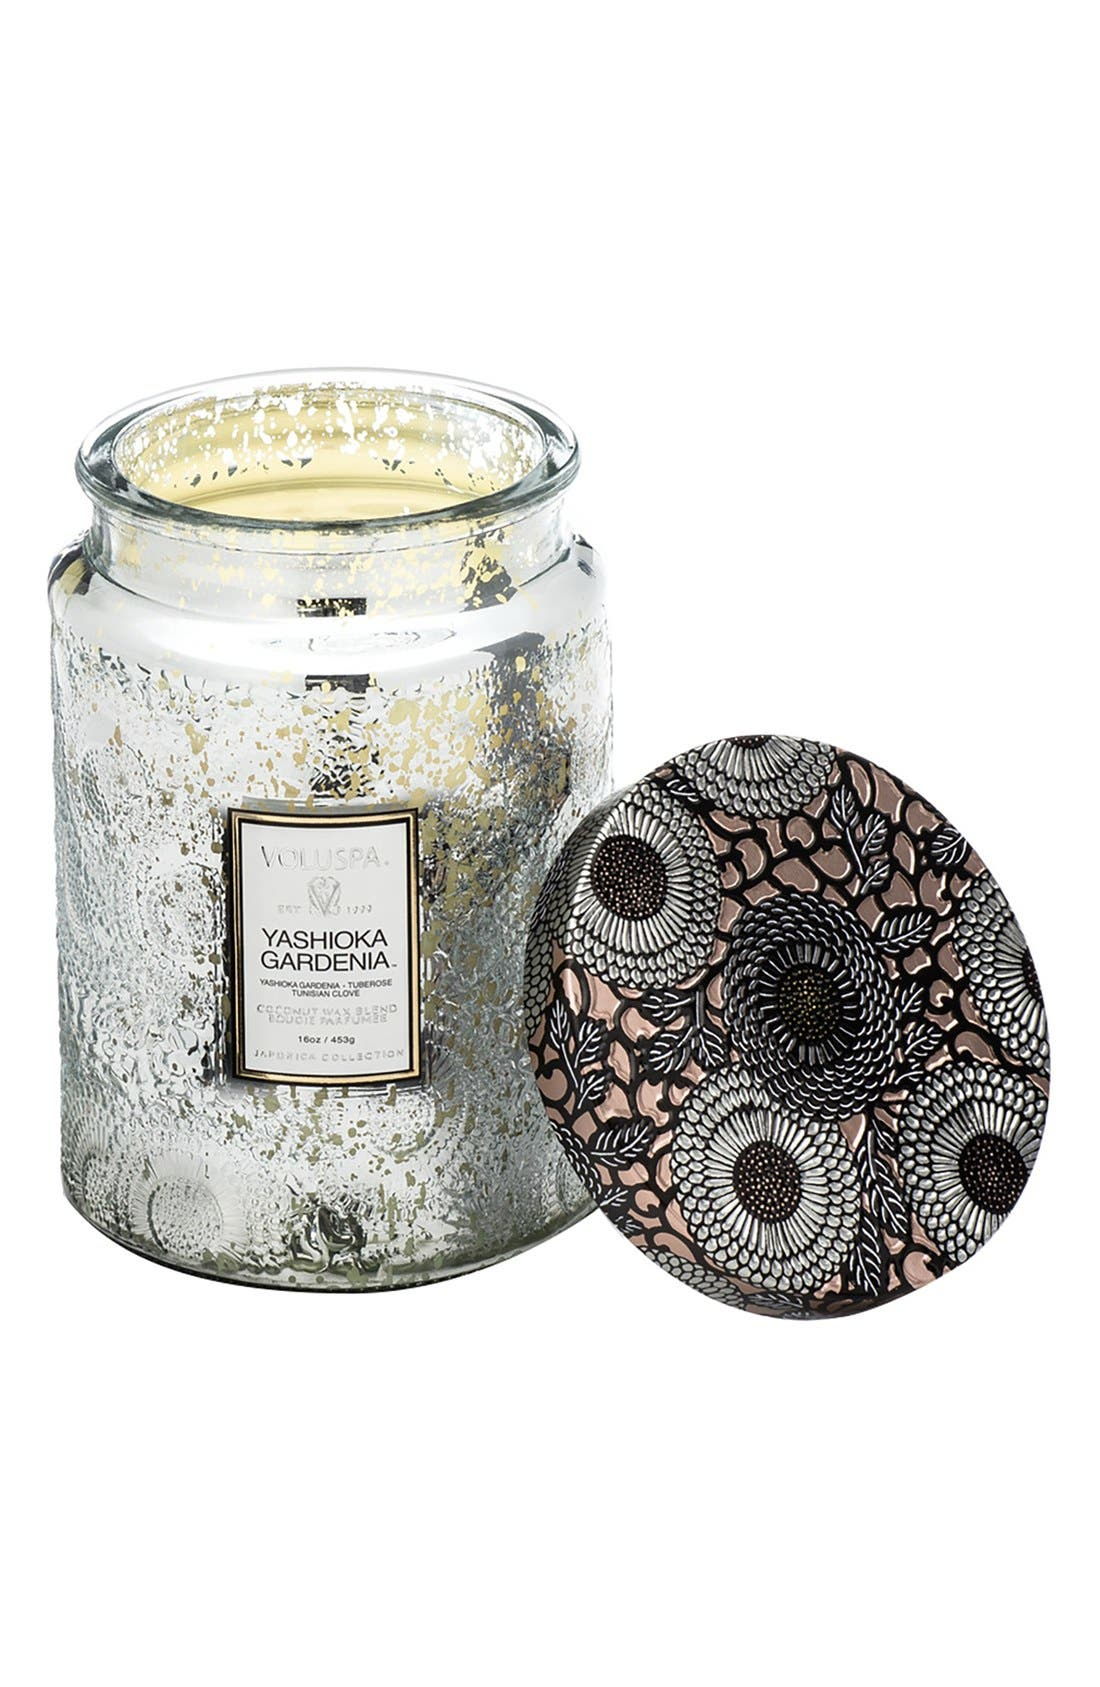 Voluspa Japonica - Yashioka Gardenia Large Embossed Glass Jar Candle (Limited Edition)